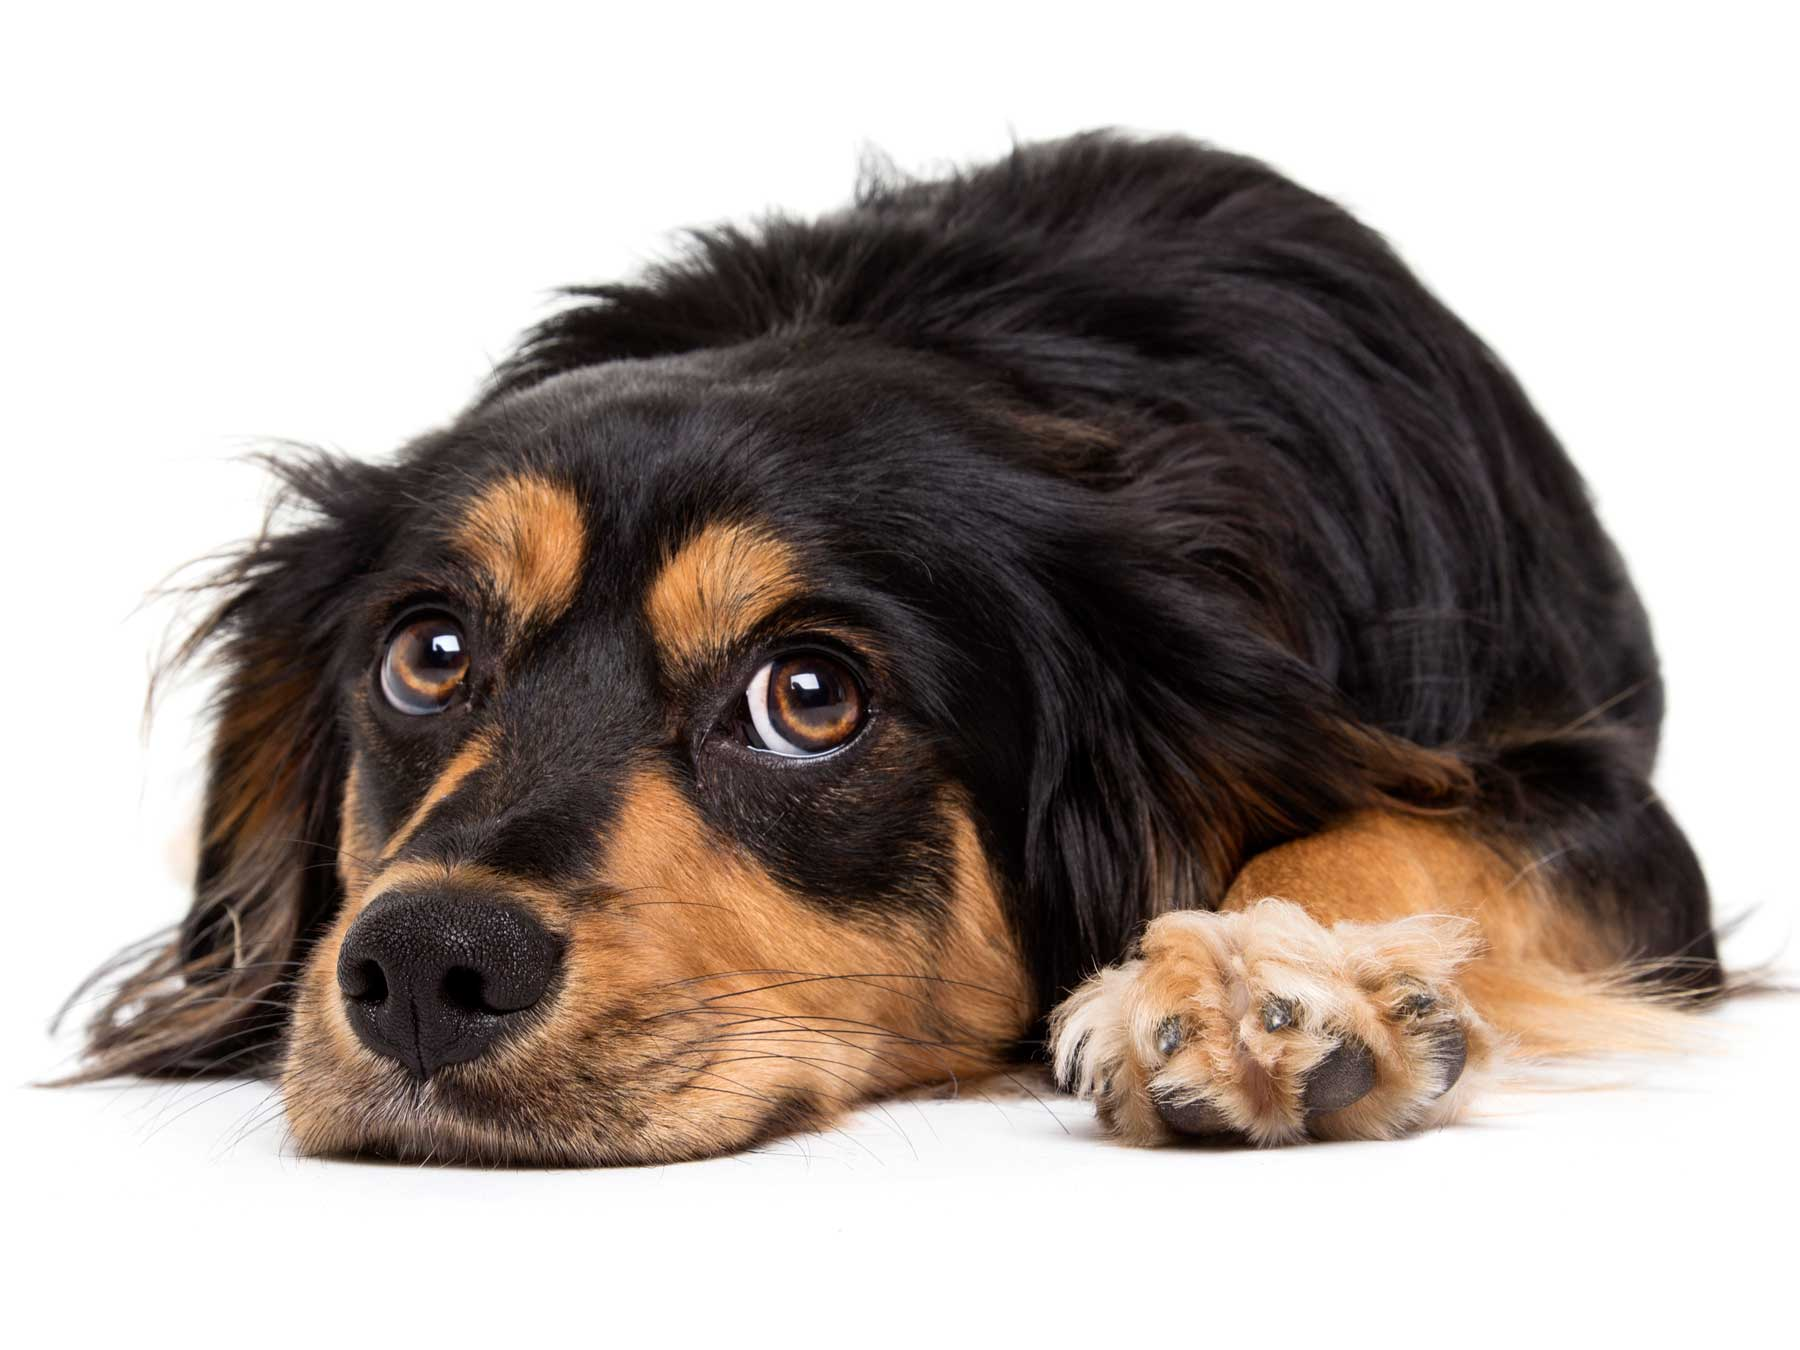 15-Pets-Dog-Brown-Black-Tired-Philip-Murray-Photography-Dublin